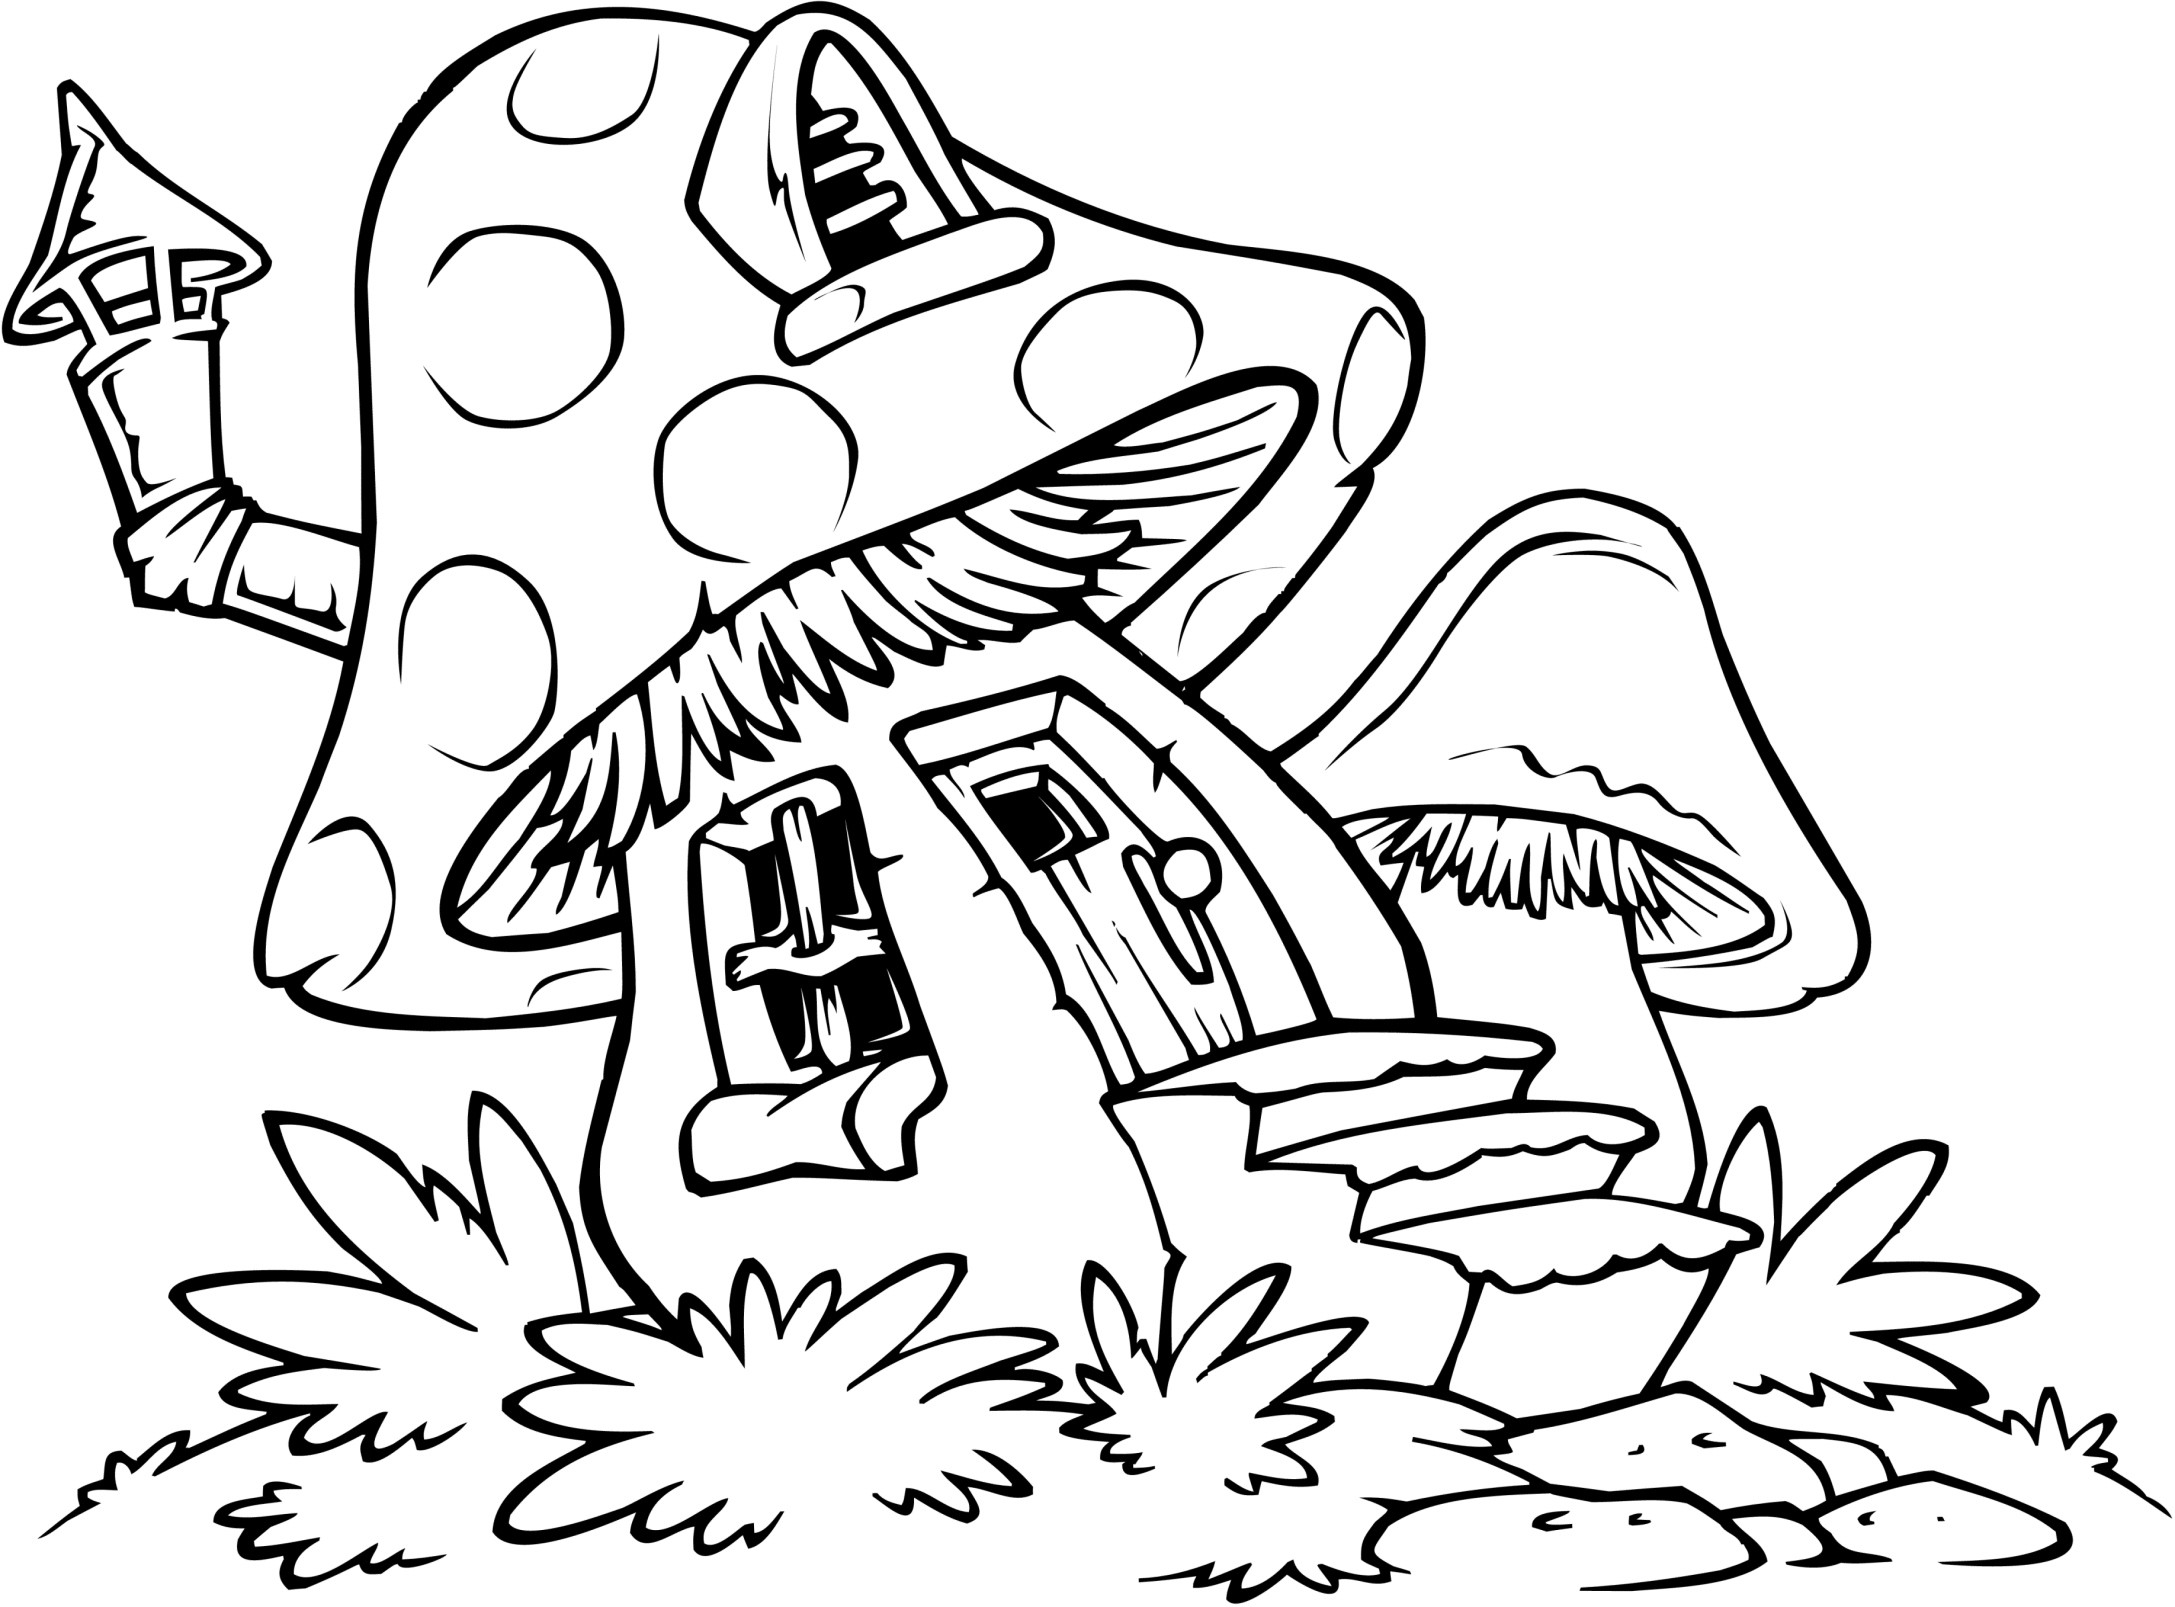 Res: 2175x1607, Terrific Full House Coloring Pages Gingerbread With Wallpapers Laptop